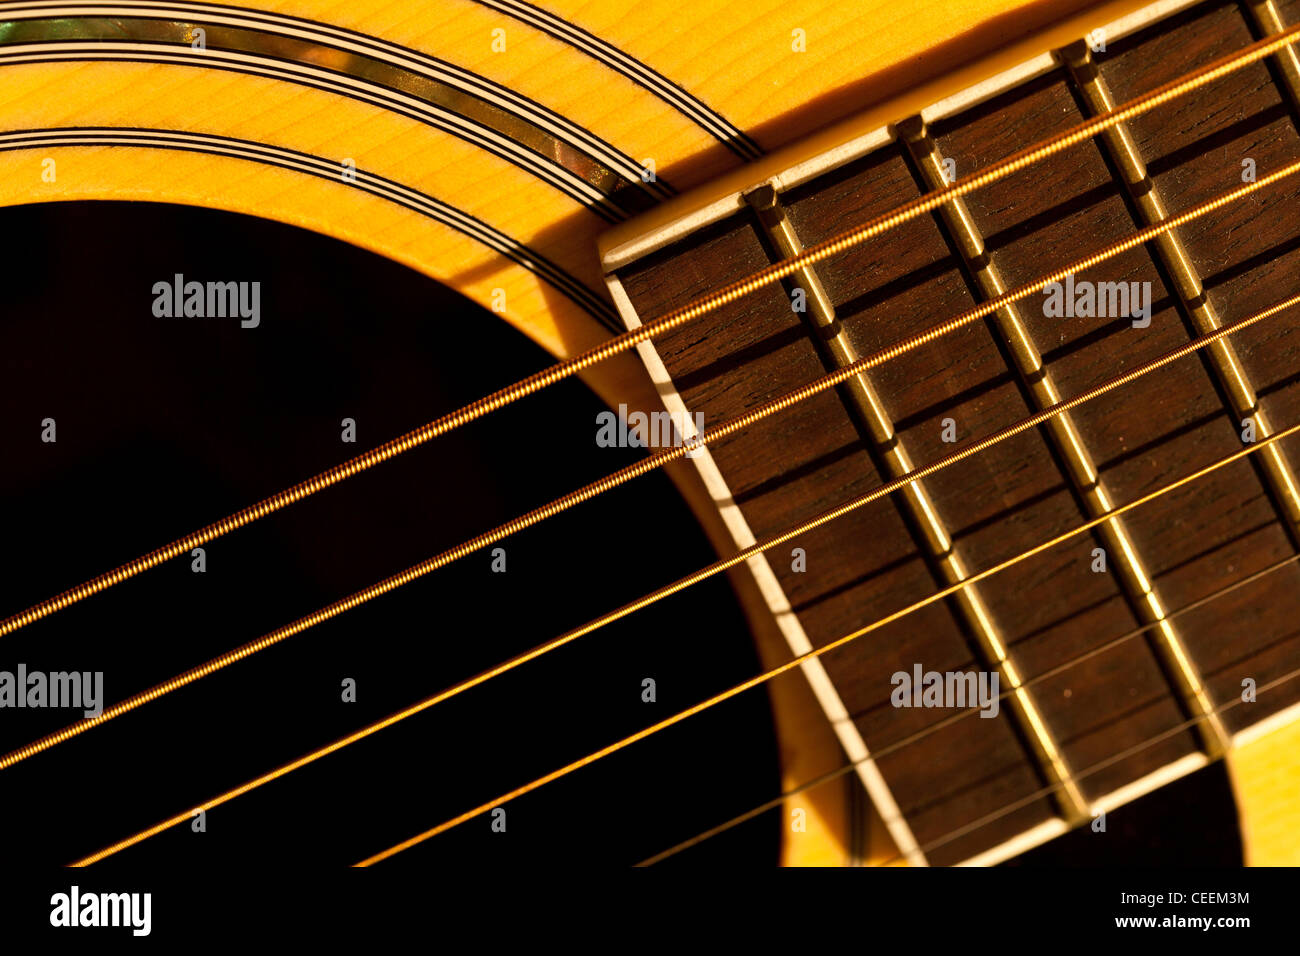 Close Up View Of Acoustic Guitar Showing Strings Sound Hole Part Upper Fretboard And Decorative Pattern Work